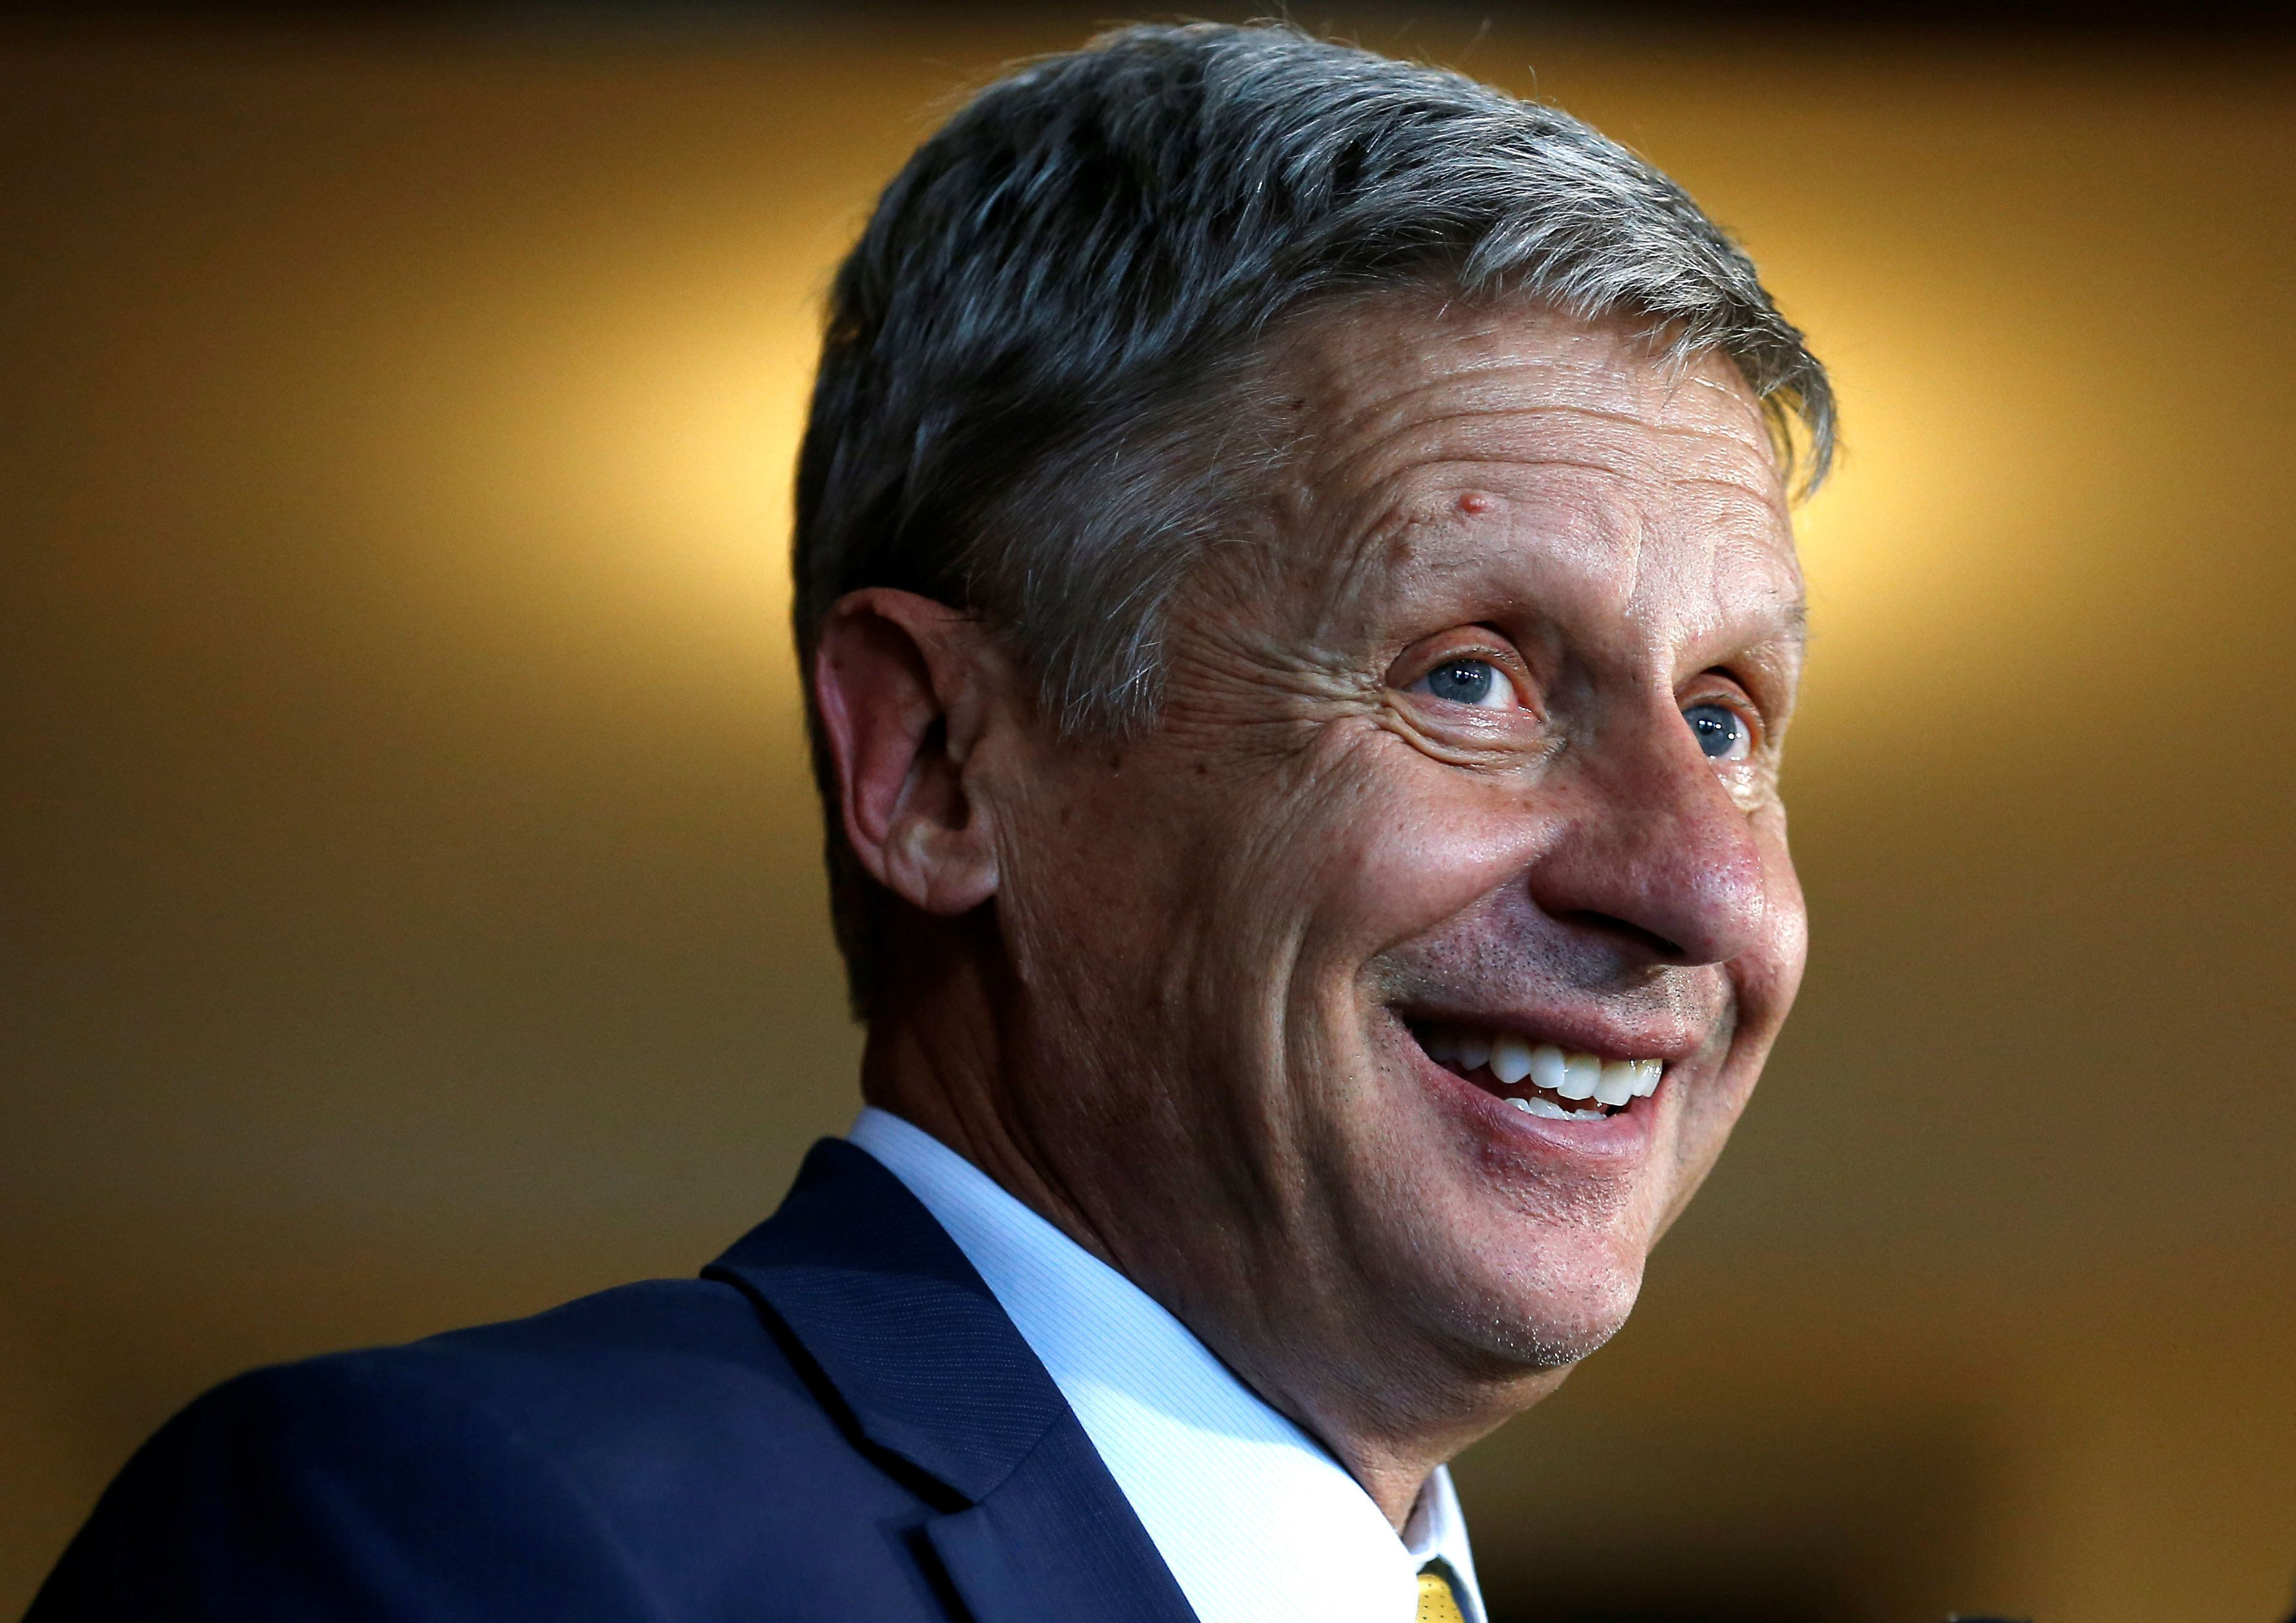 U.S. Libertarian presidential candidate Gary Johnson speaks to the media after making a foreign policy address at the University of Chicago in Chicago, Illinois, U.S., October 7, 2016.    REUTERS/Jim Young